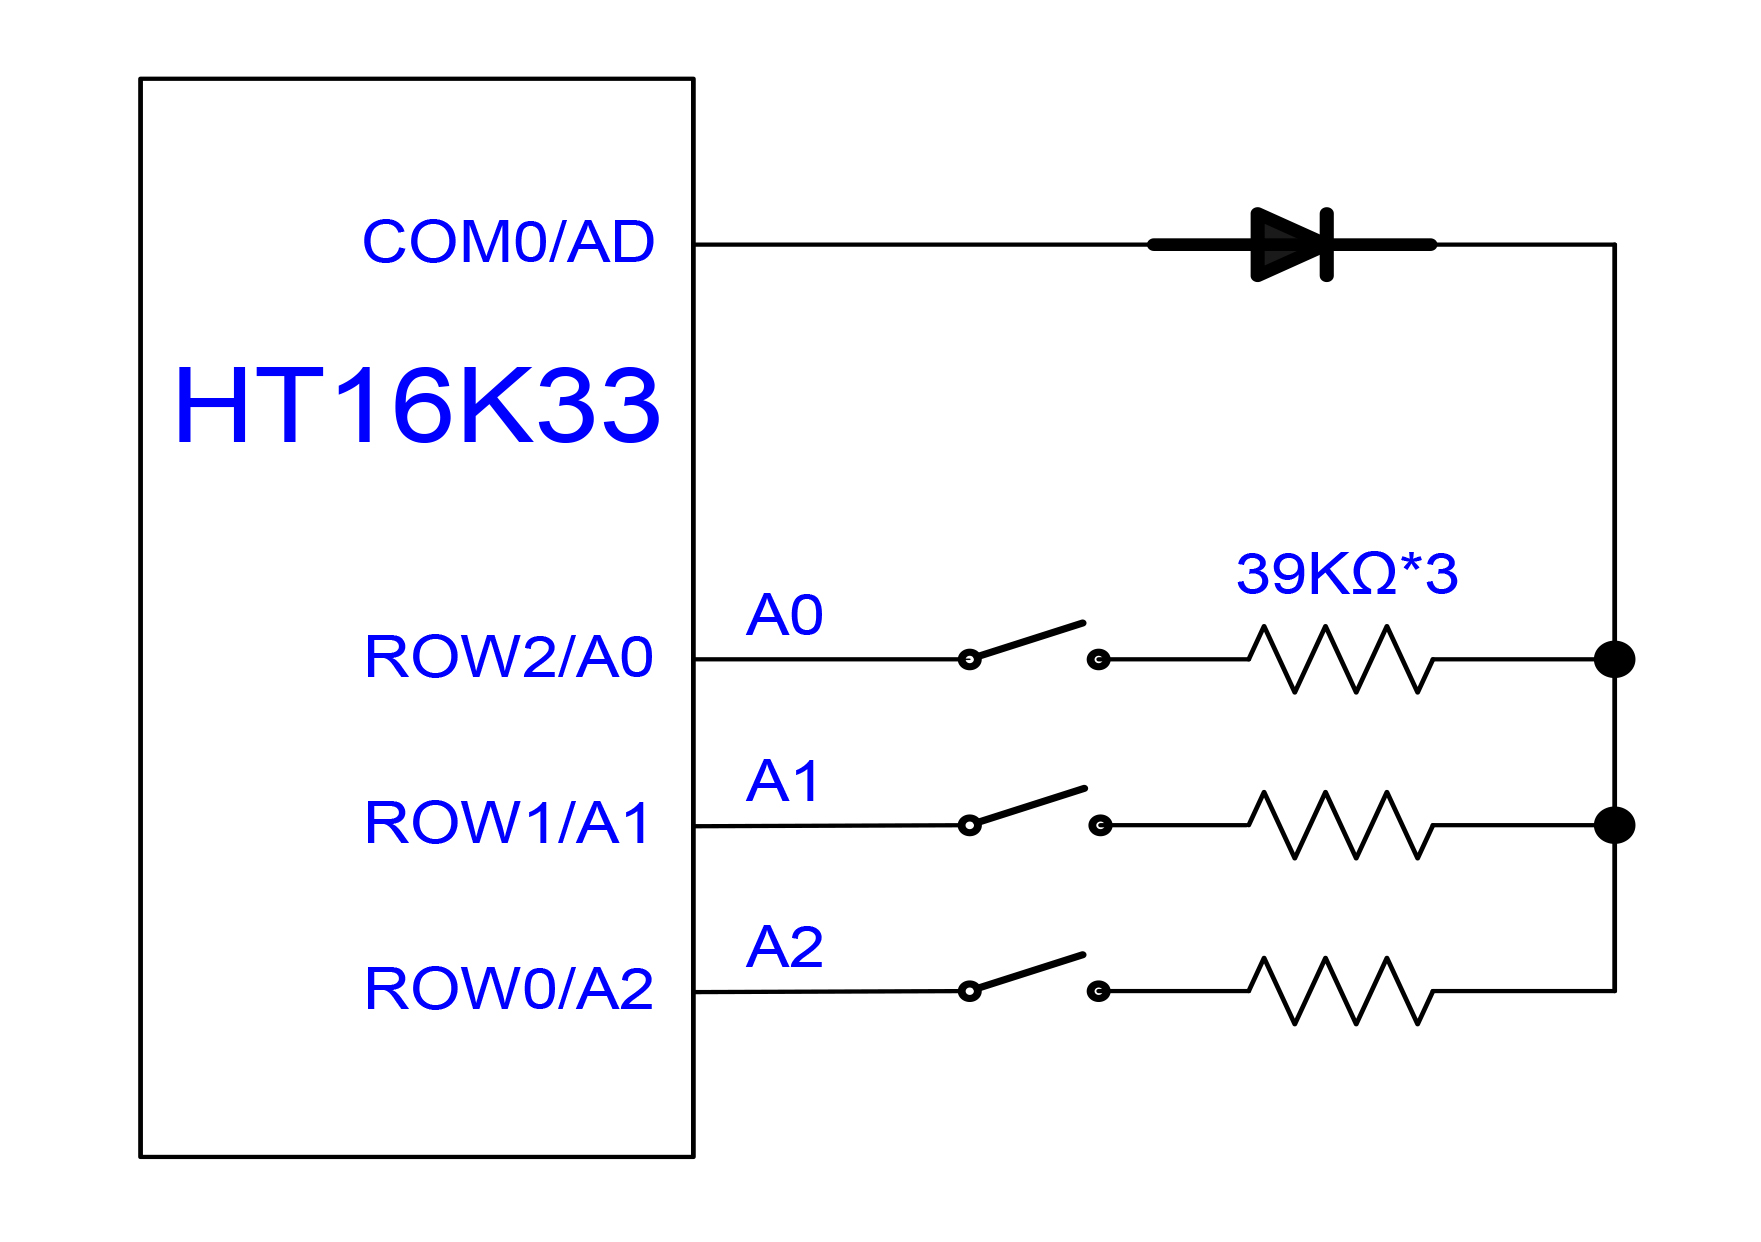 Controlling an LED Matrix with the HT16K33 - Parts Not Included